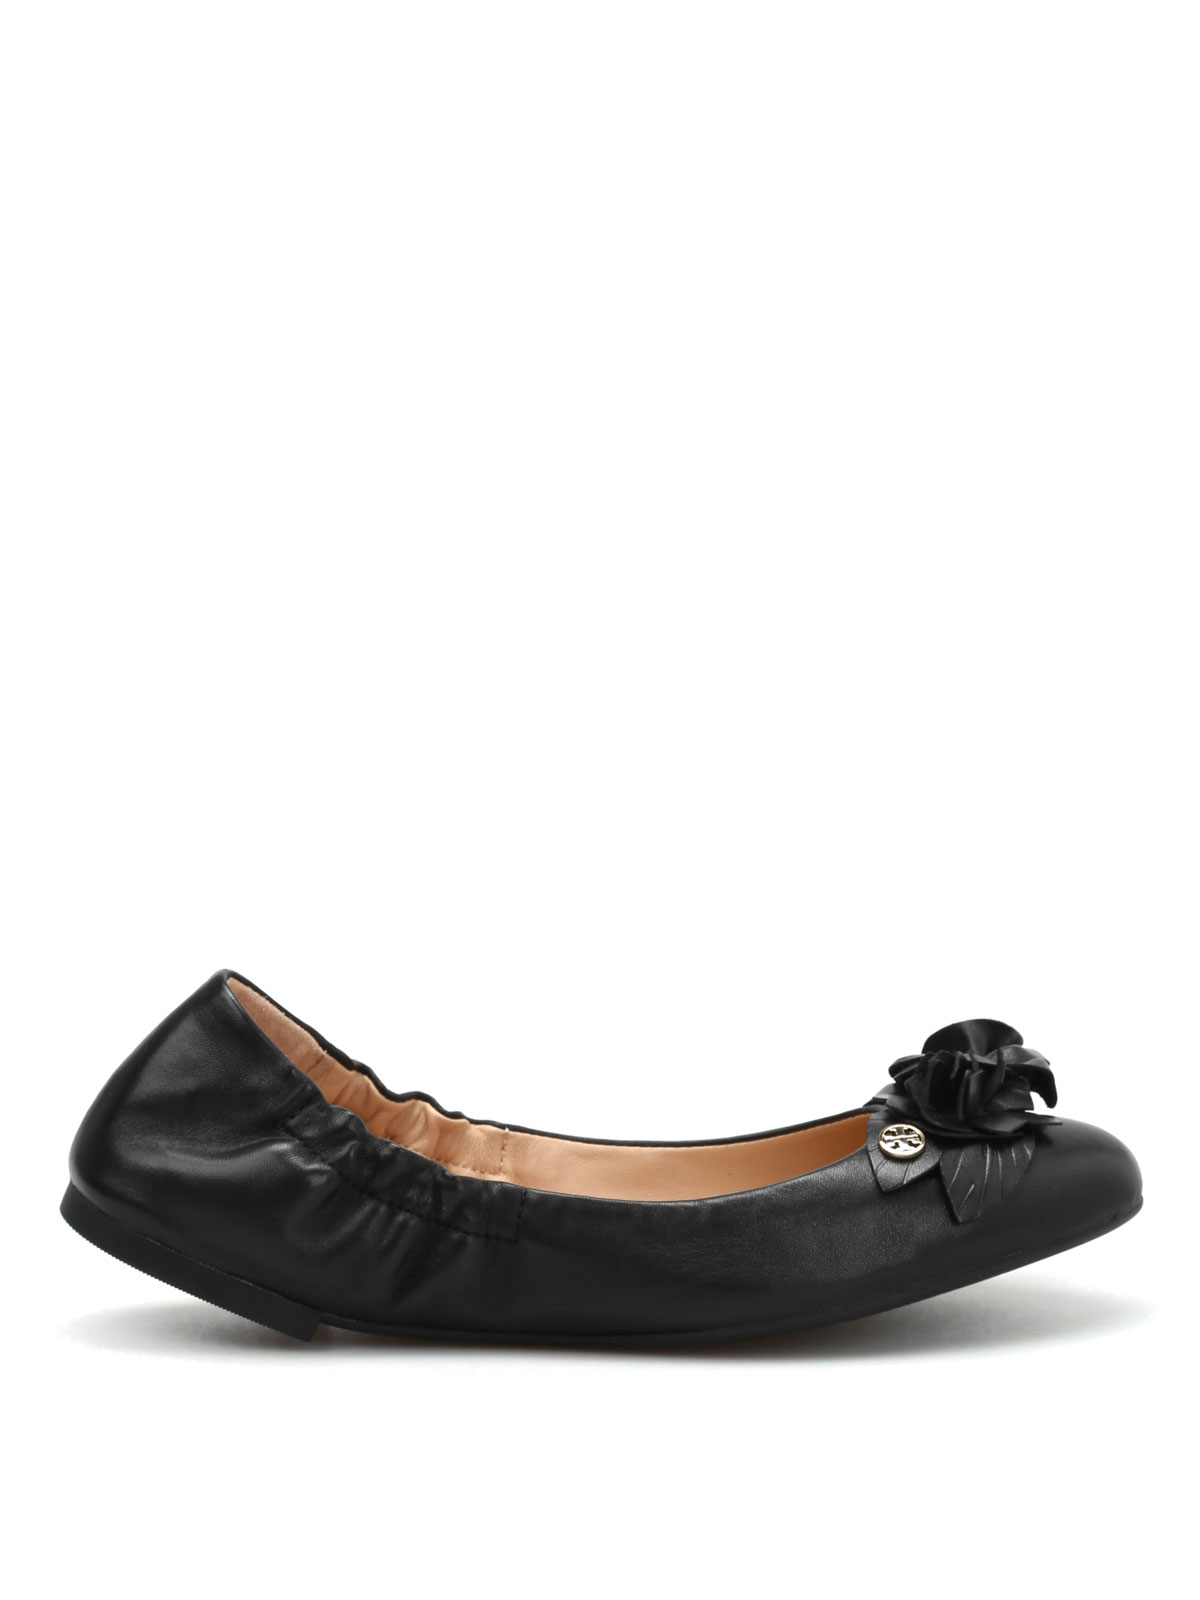 Blossom Ballet Flats By Tory Burch - Flat Shoes | IKRIX